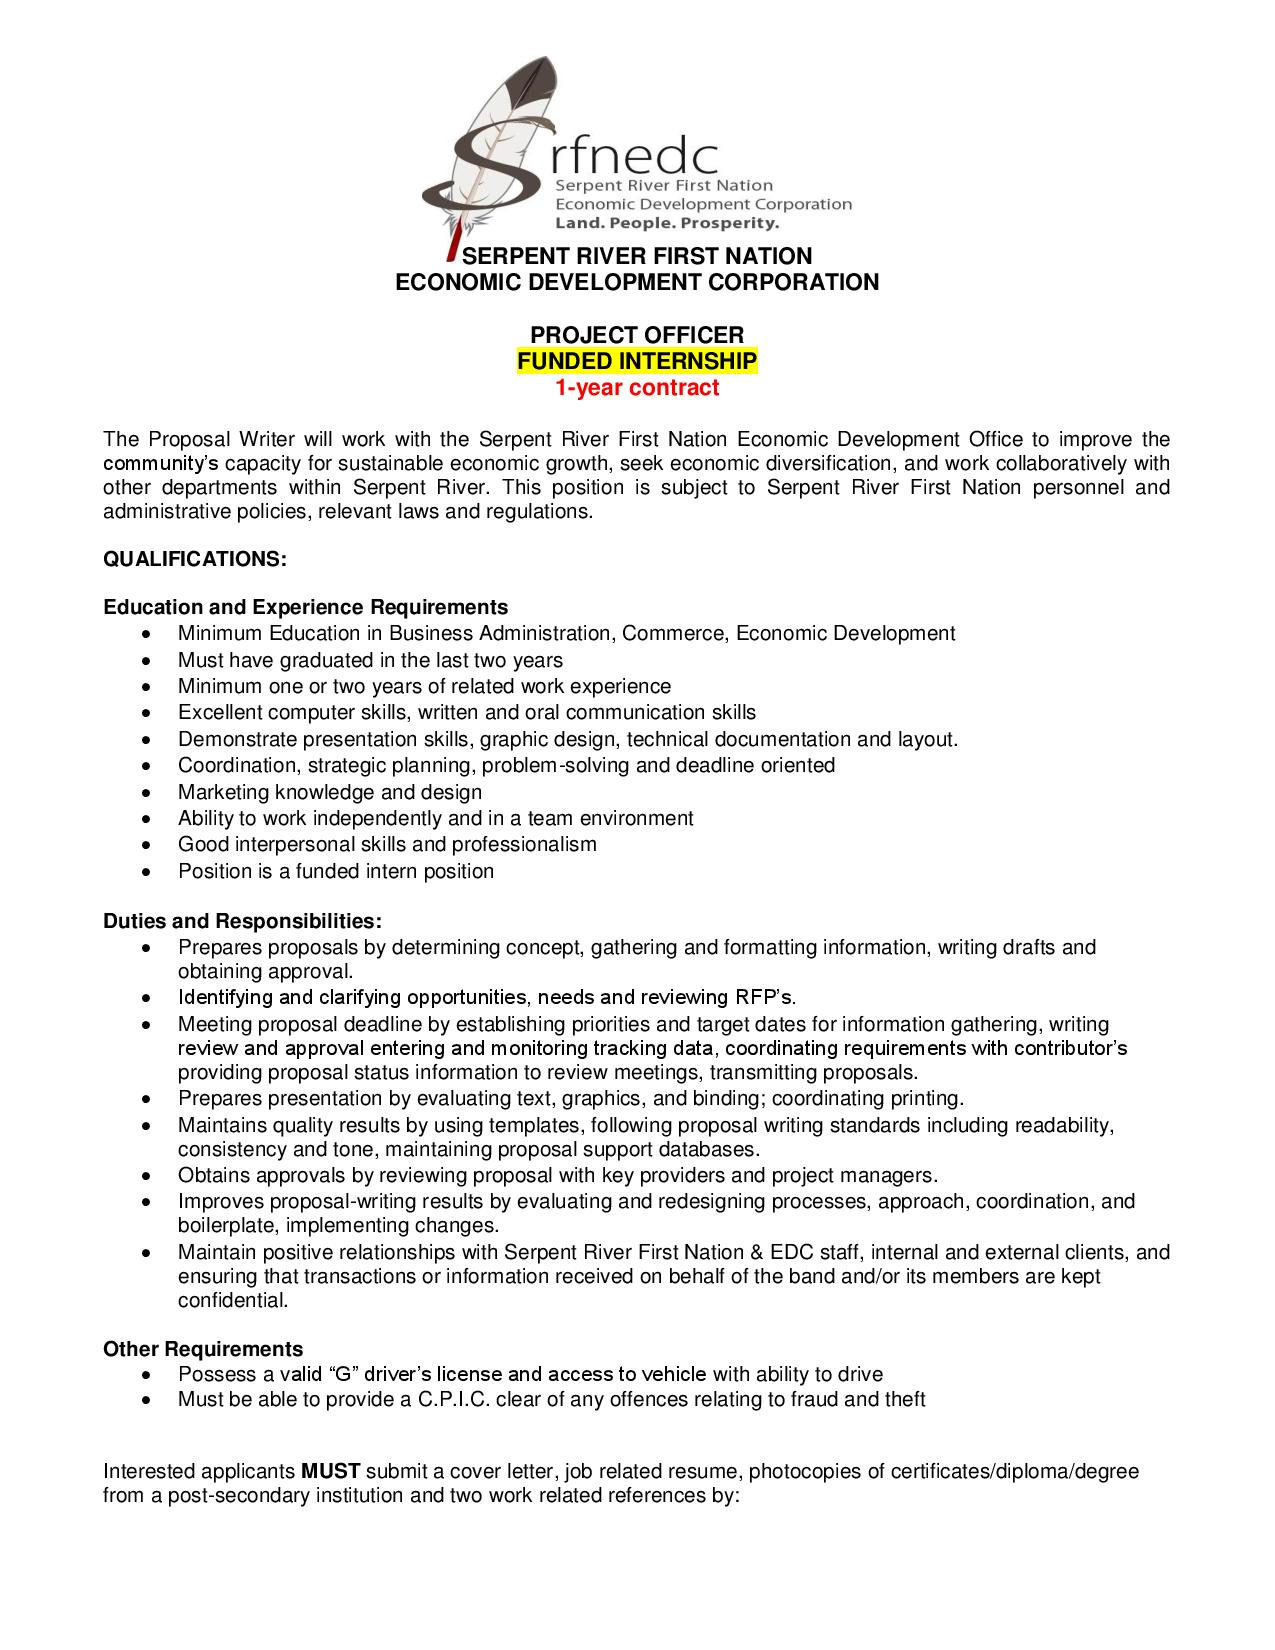 Project Officer - SRFNEDC JOB POSTING 2019-page-001.jpg